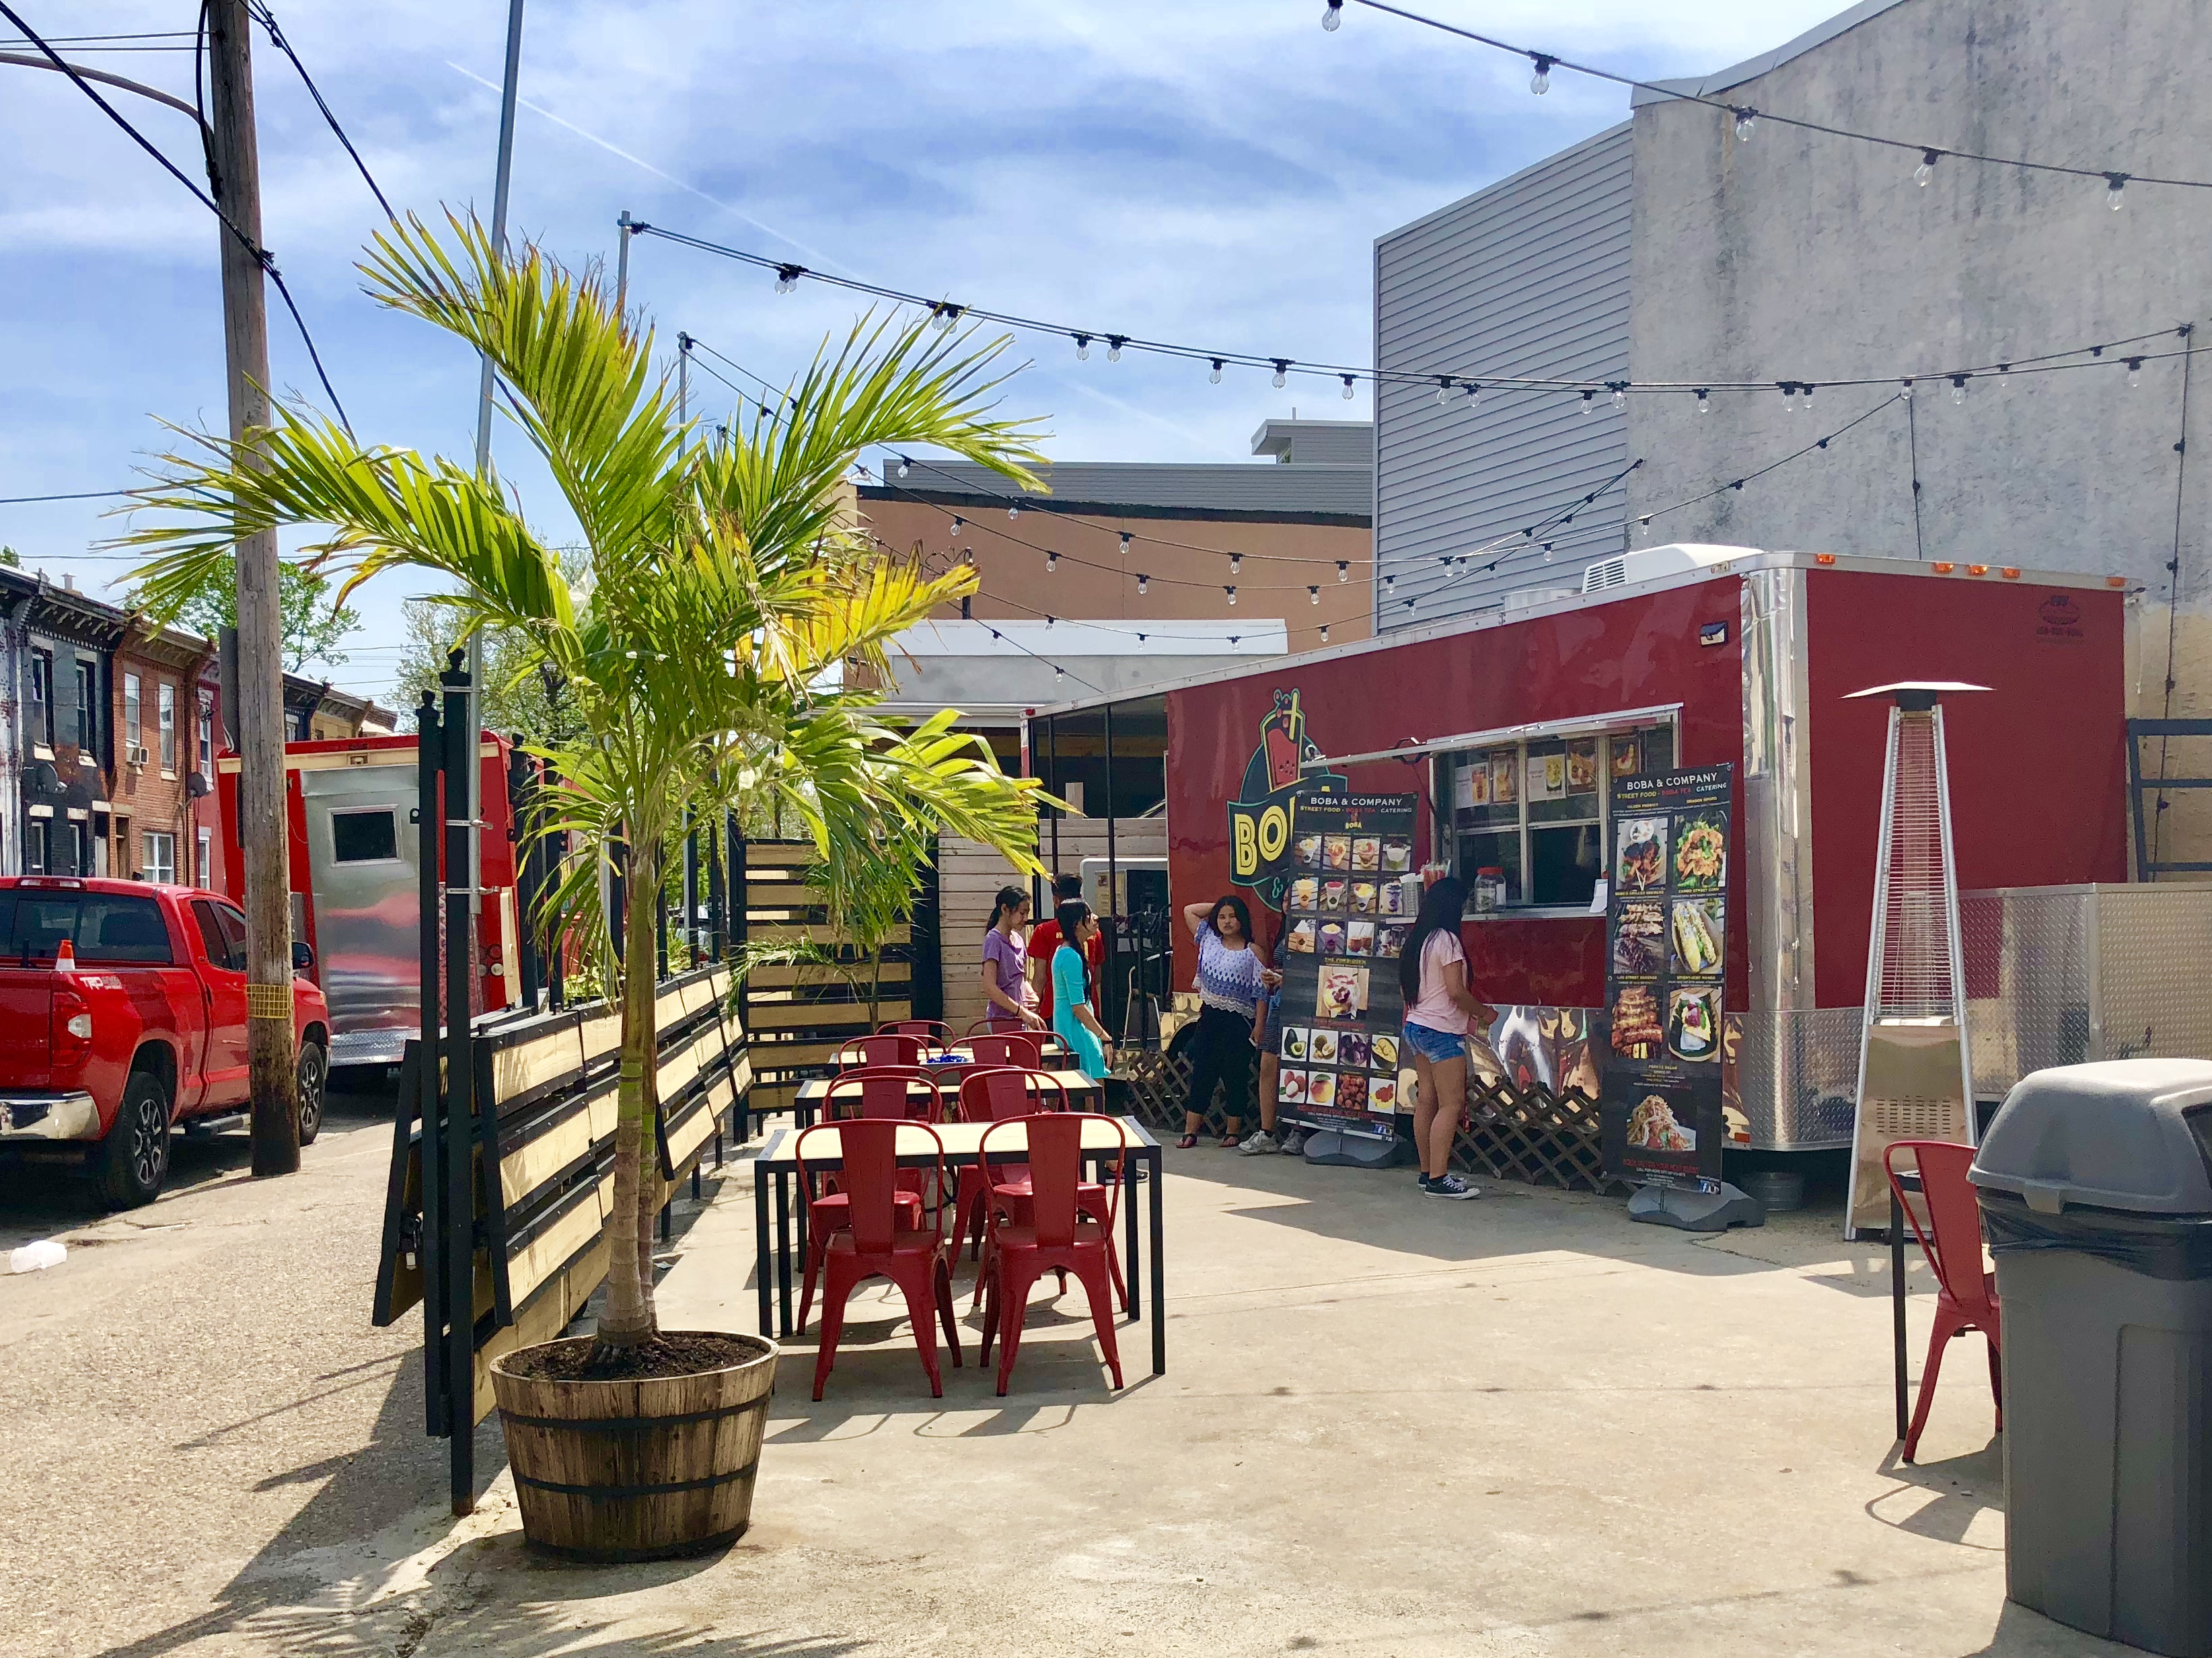 The Boba and Company food truck specializing in bubble tea and Cambodian street food truck brightens-up a corner lot at 6th and Moyamensing in South Philadelphia.